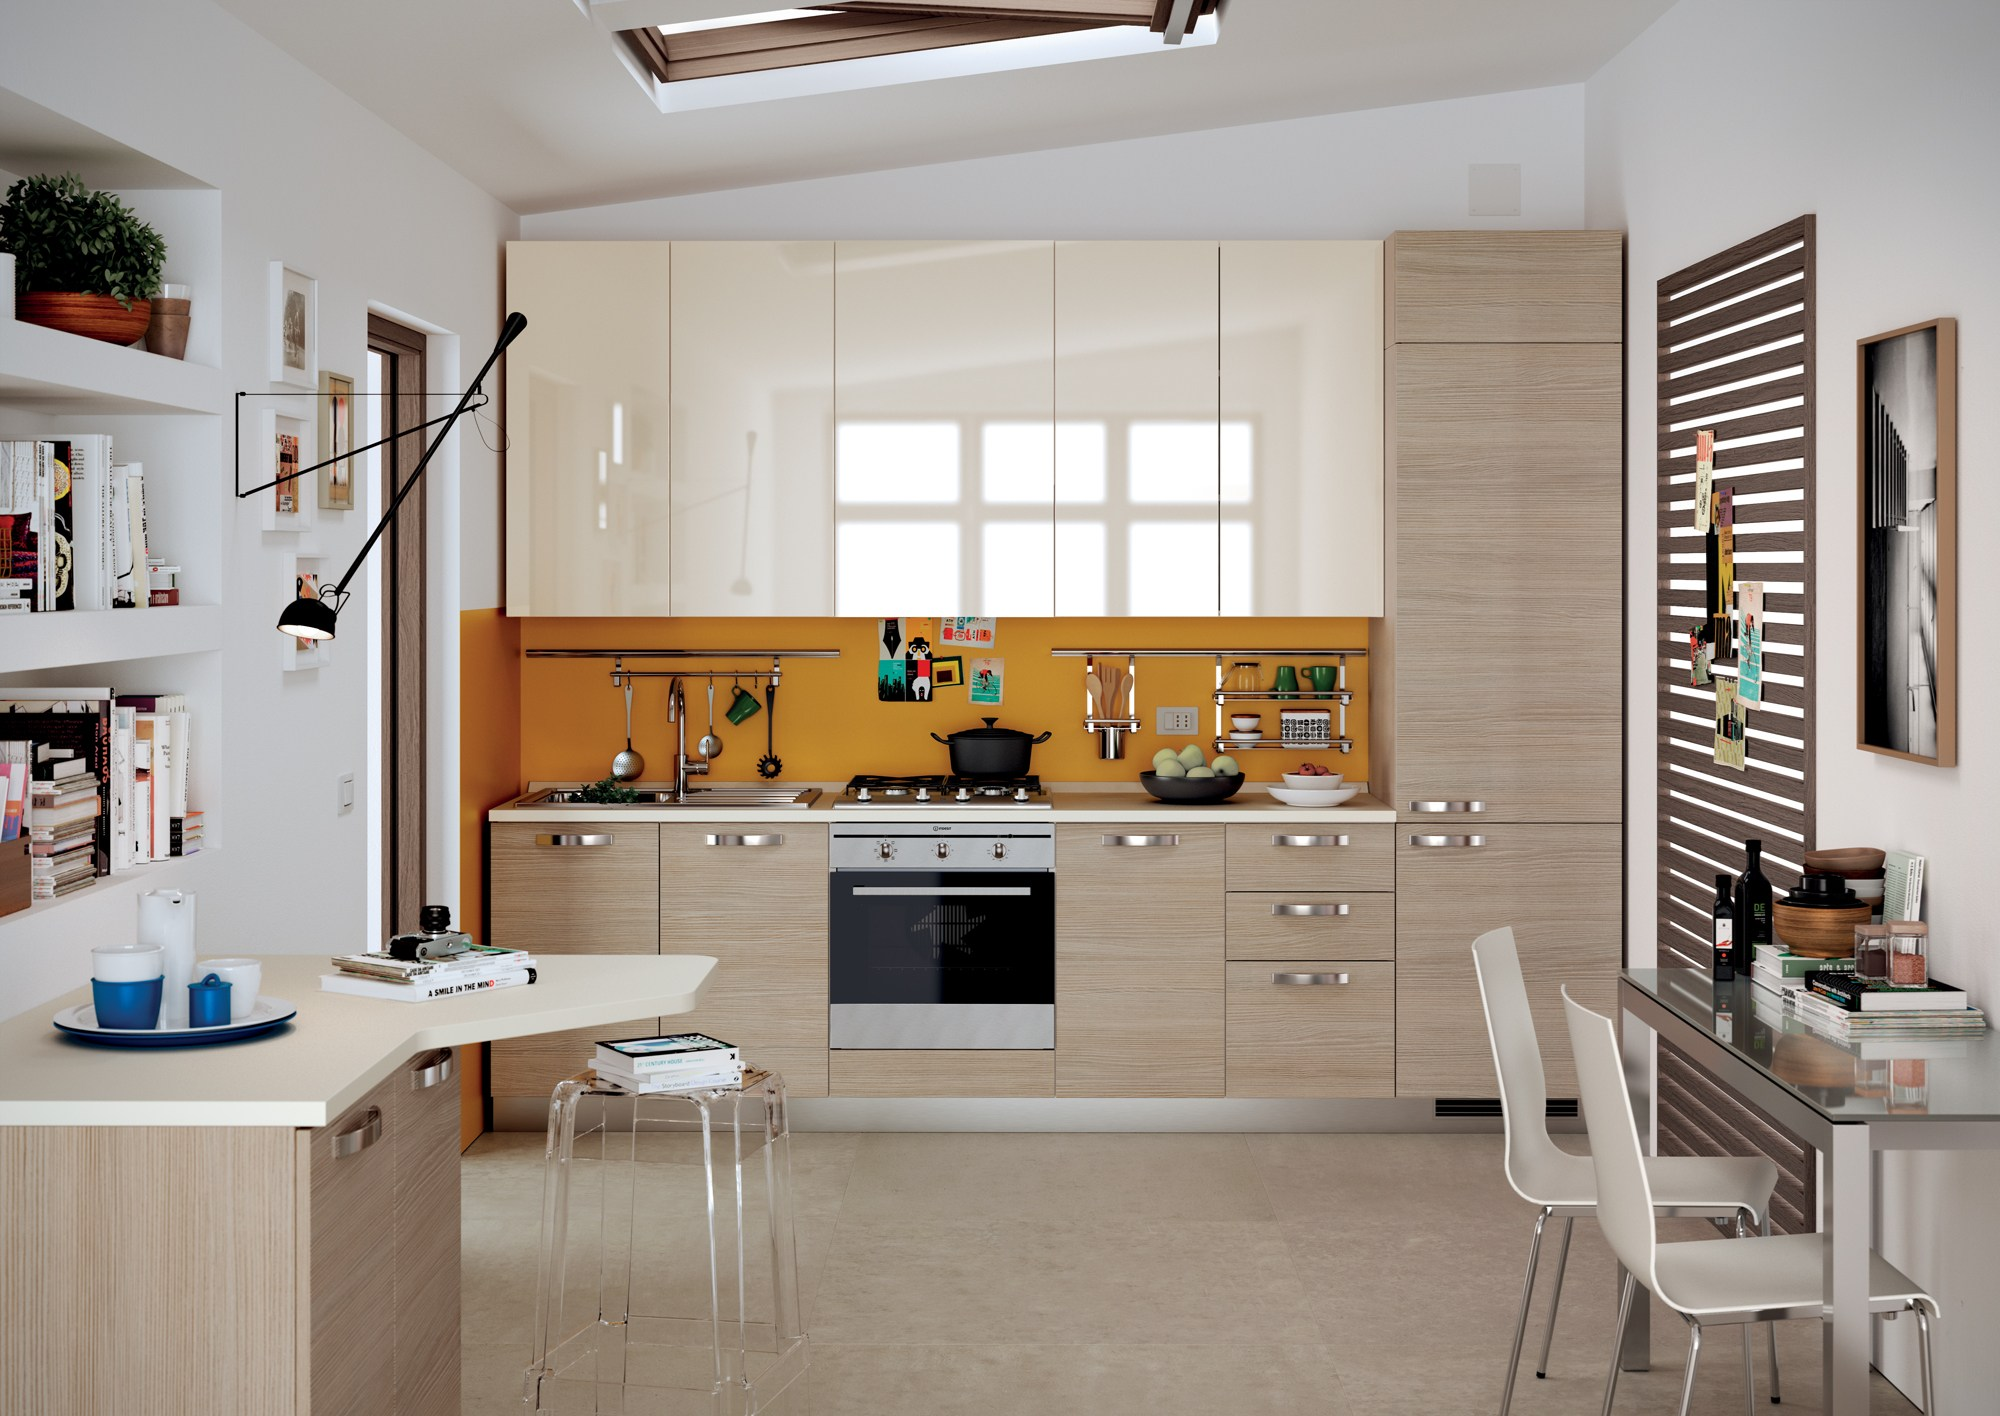 Awesome Cucina Scavolini Flux Images - Orna.info - orna.info